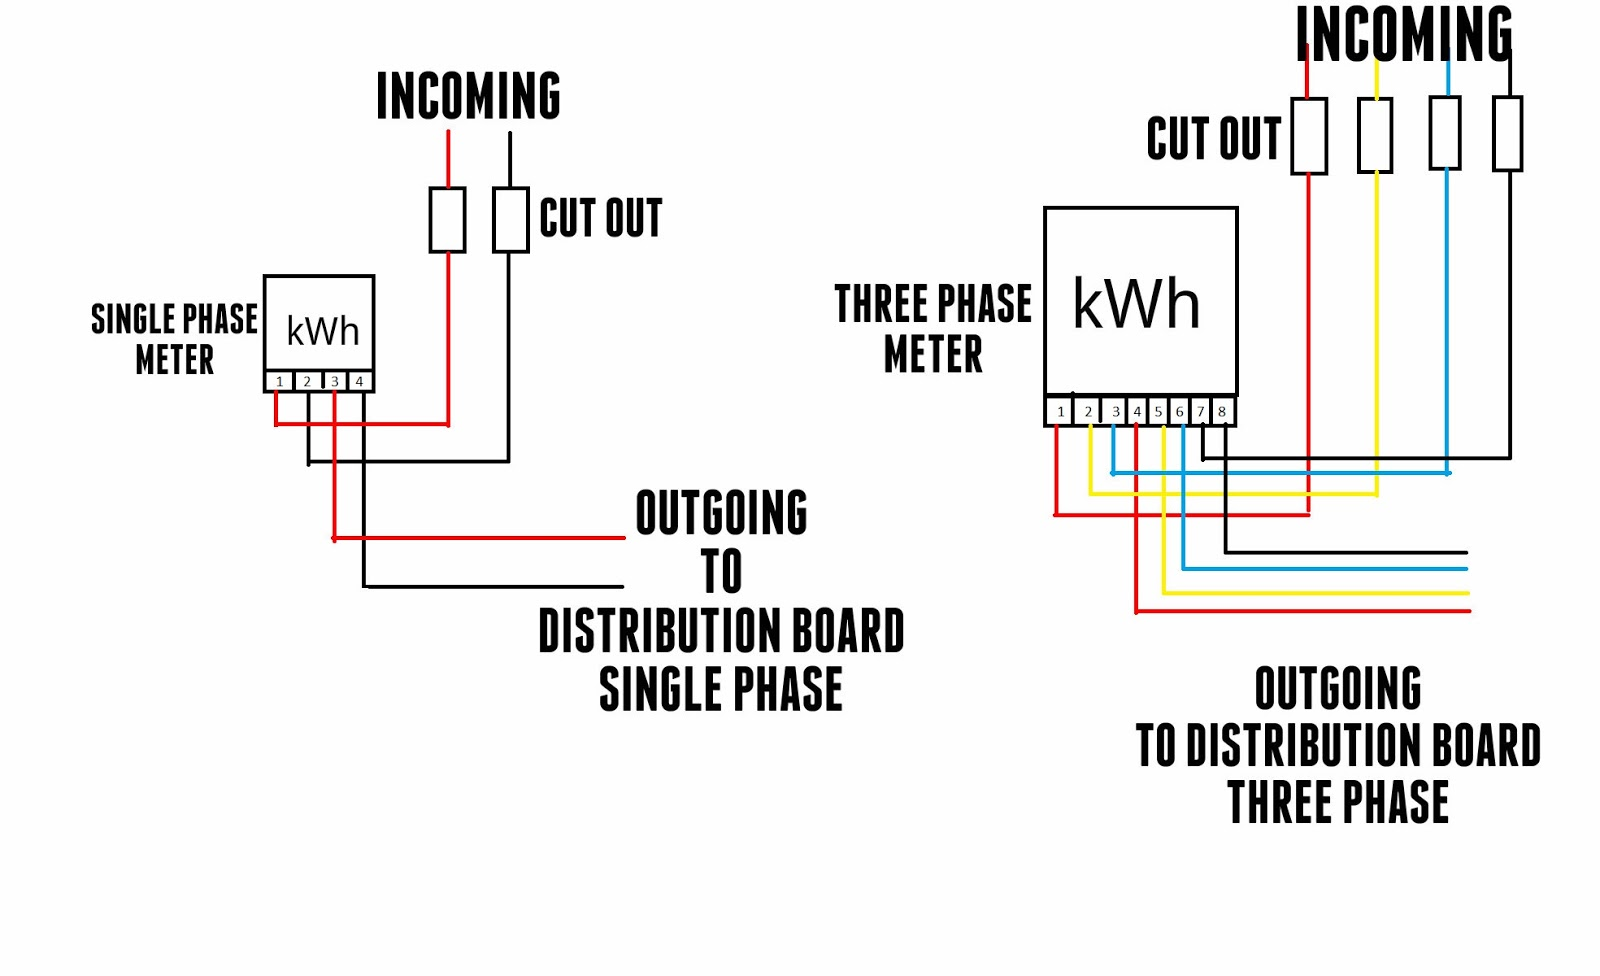 hour meter wiring diagram xm 5362  schematic for operation of home watthour meter from the hour meter wiring diagram operation of home watthour meter